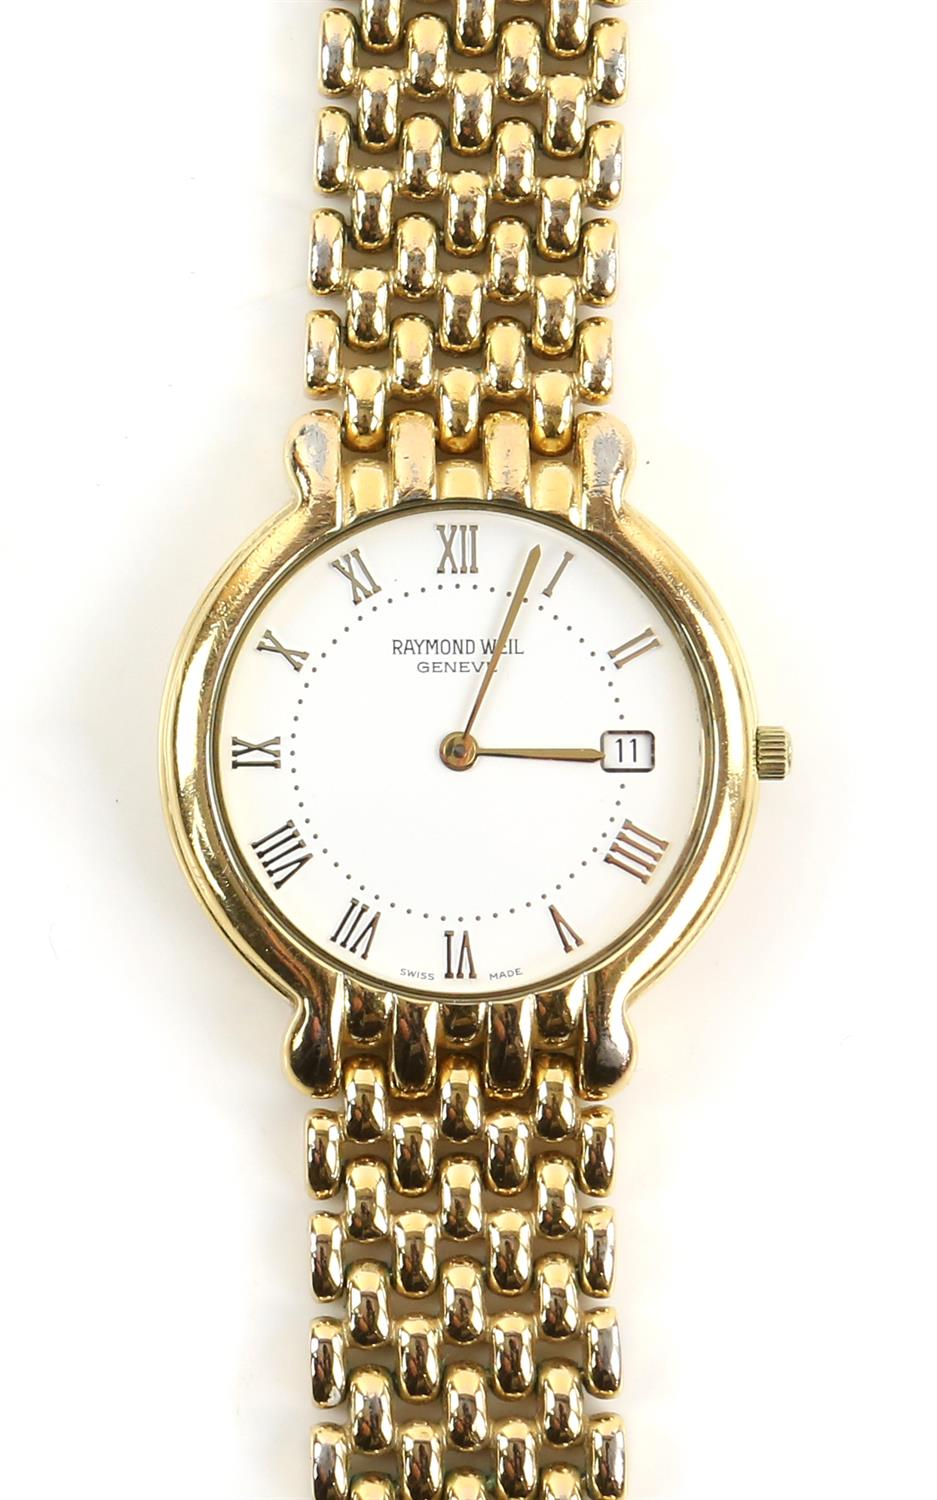 Raymond Weil, A Gentleman's reference 6549 dress watch with white enamel dial, baton hour markers, - Image 3 of 11